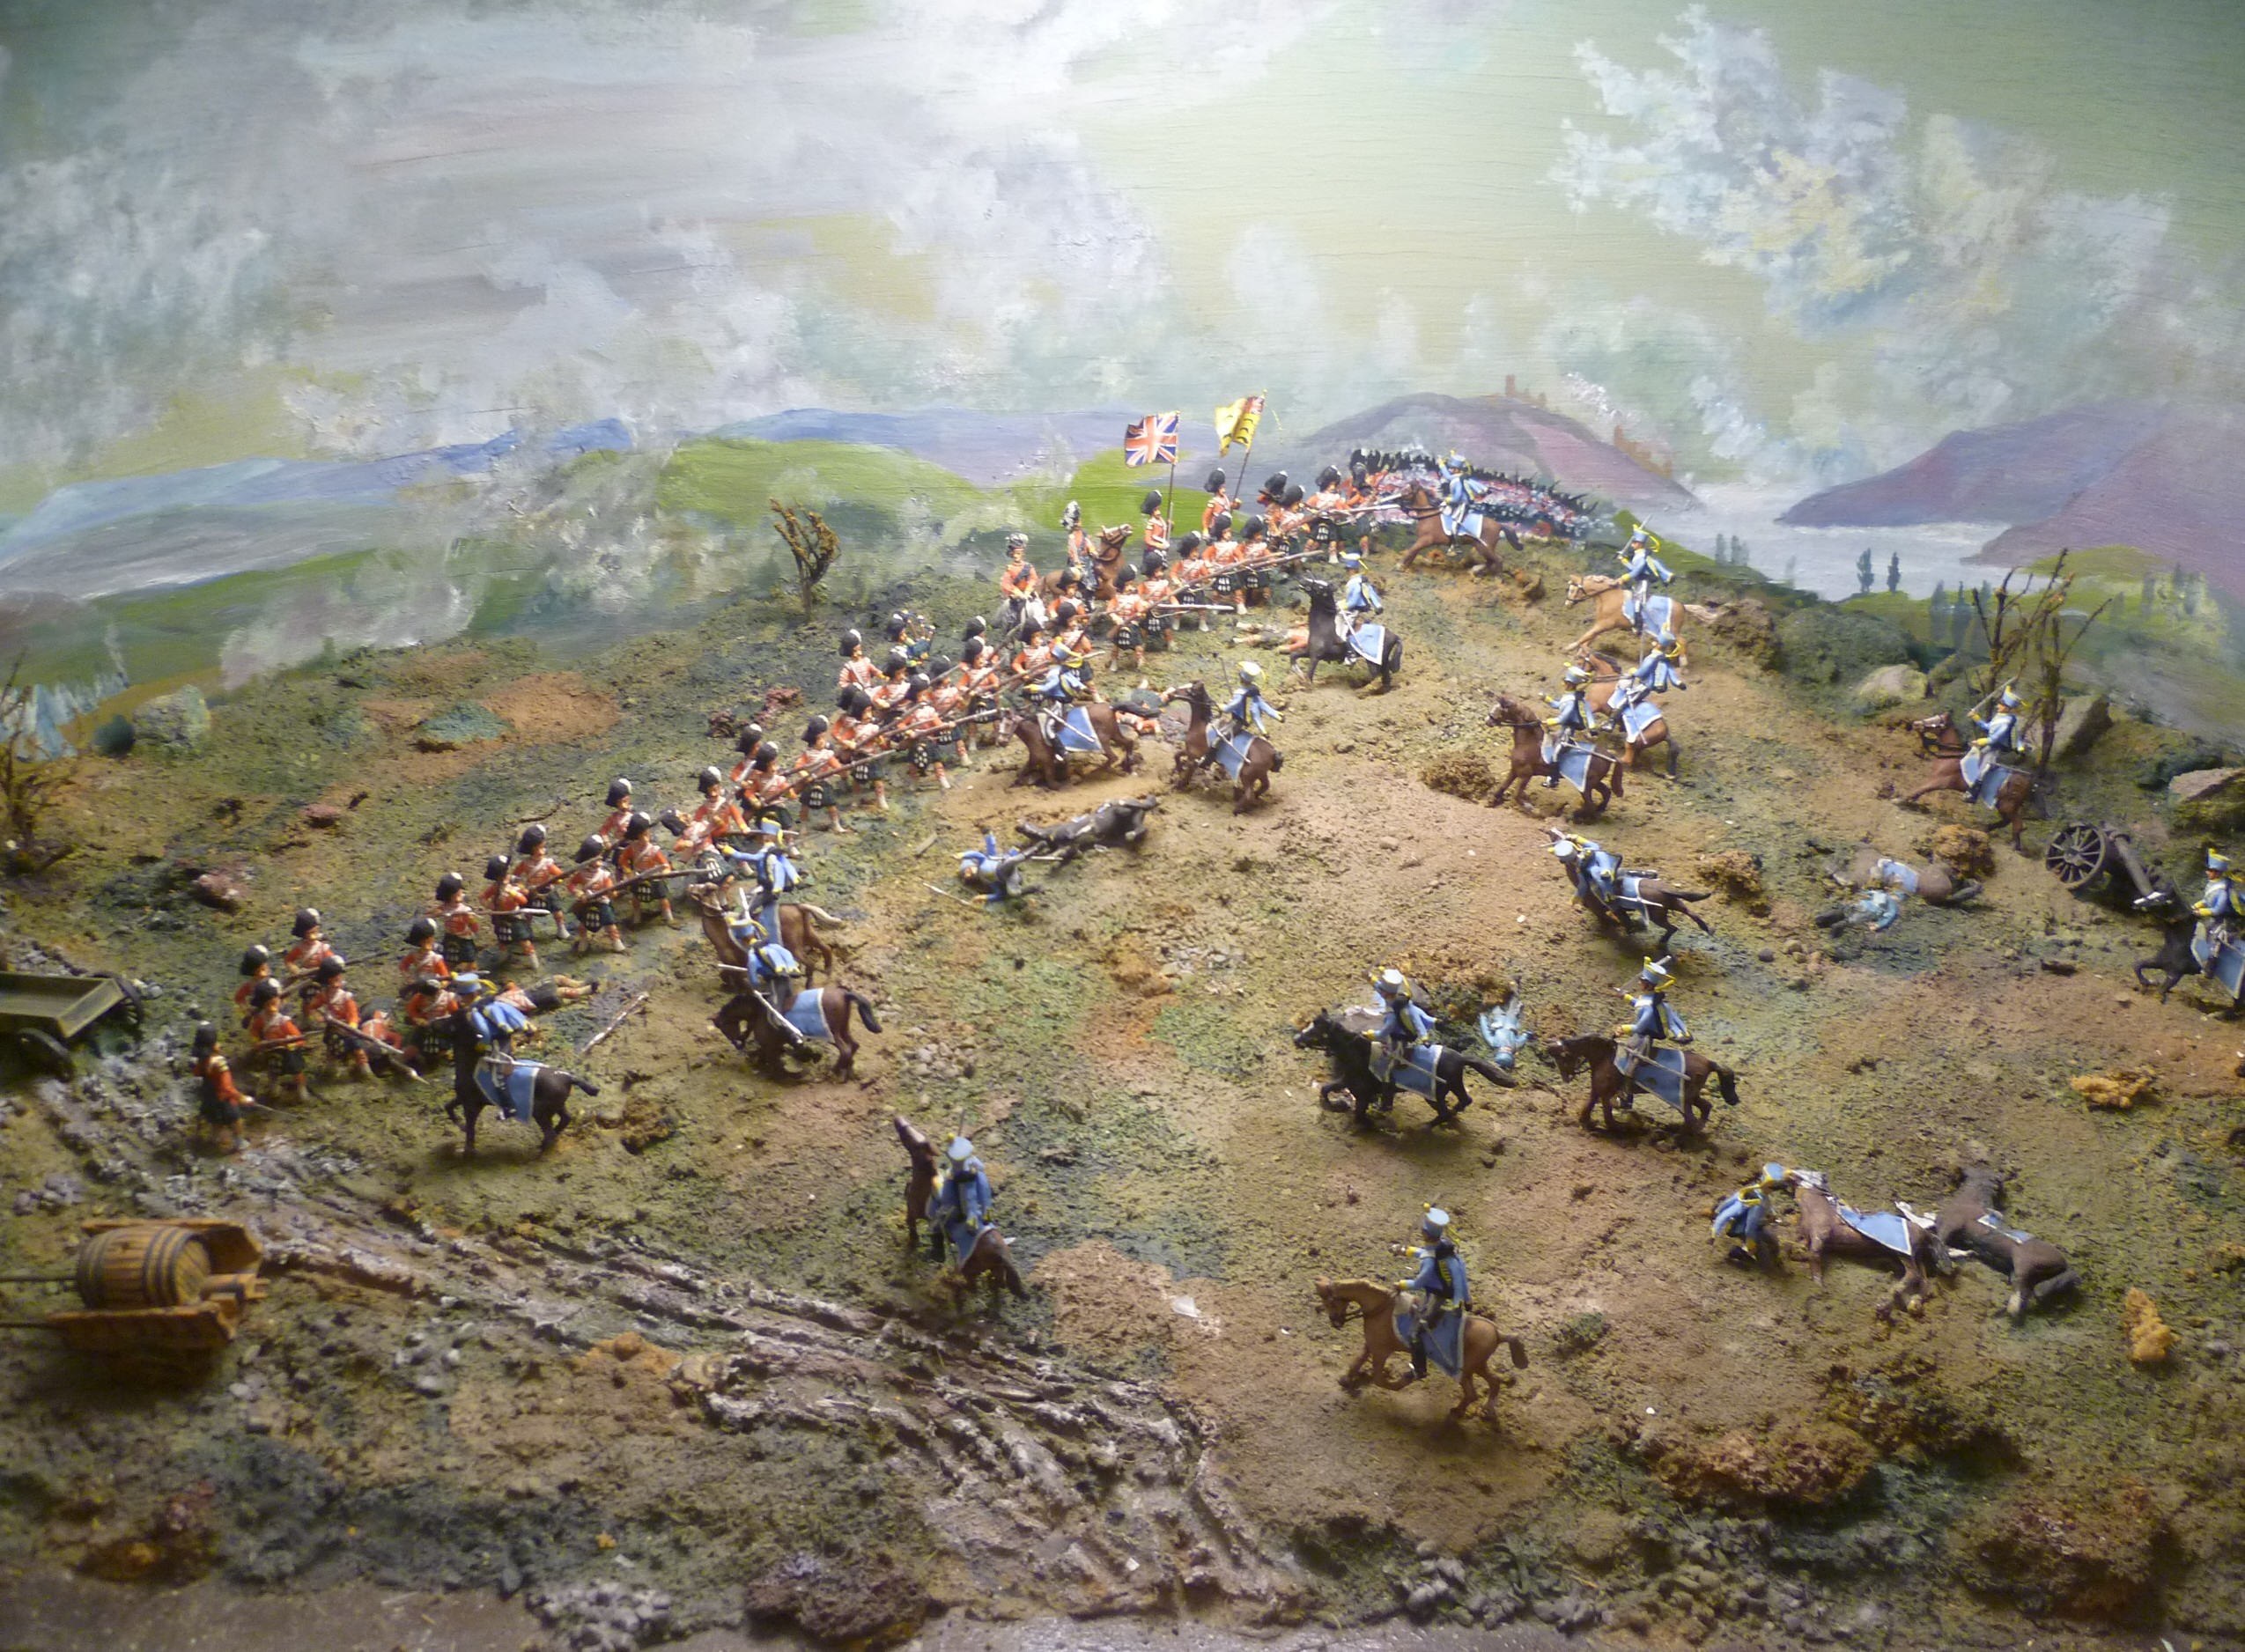 http://upload.wikimedia.org/wikipedia/commons/d/db/Thin_Red_Line_diorama,_Stirling_Castle.jpg